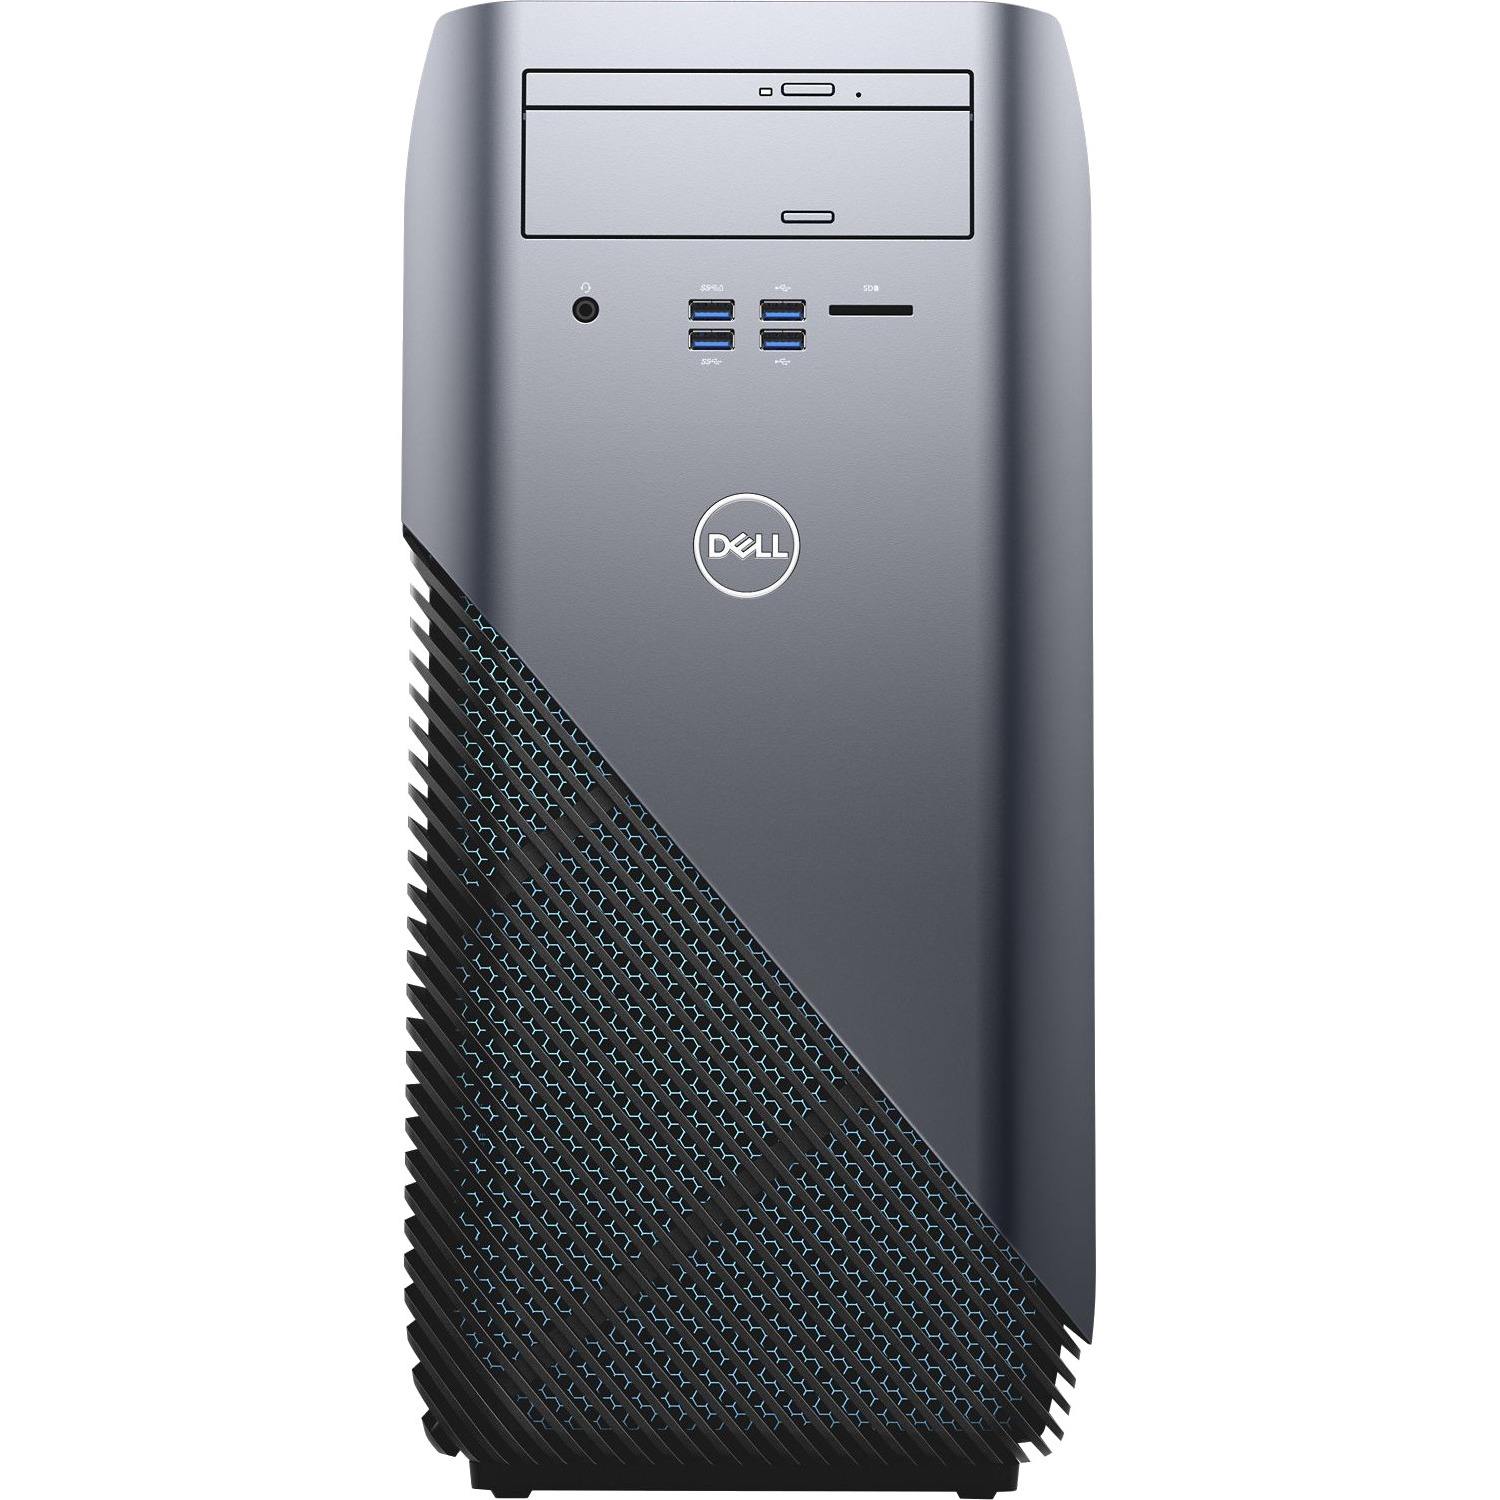 Dell Inspiron Gaming Desktop, AMD Ryzen 5 1400, 3.4GHZ, AMD Radeon RX 570 4GB GDDR5 Graphic Card, 8GB DDR4 Memory, 1TB HD , I5675A933BLU